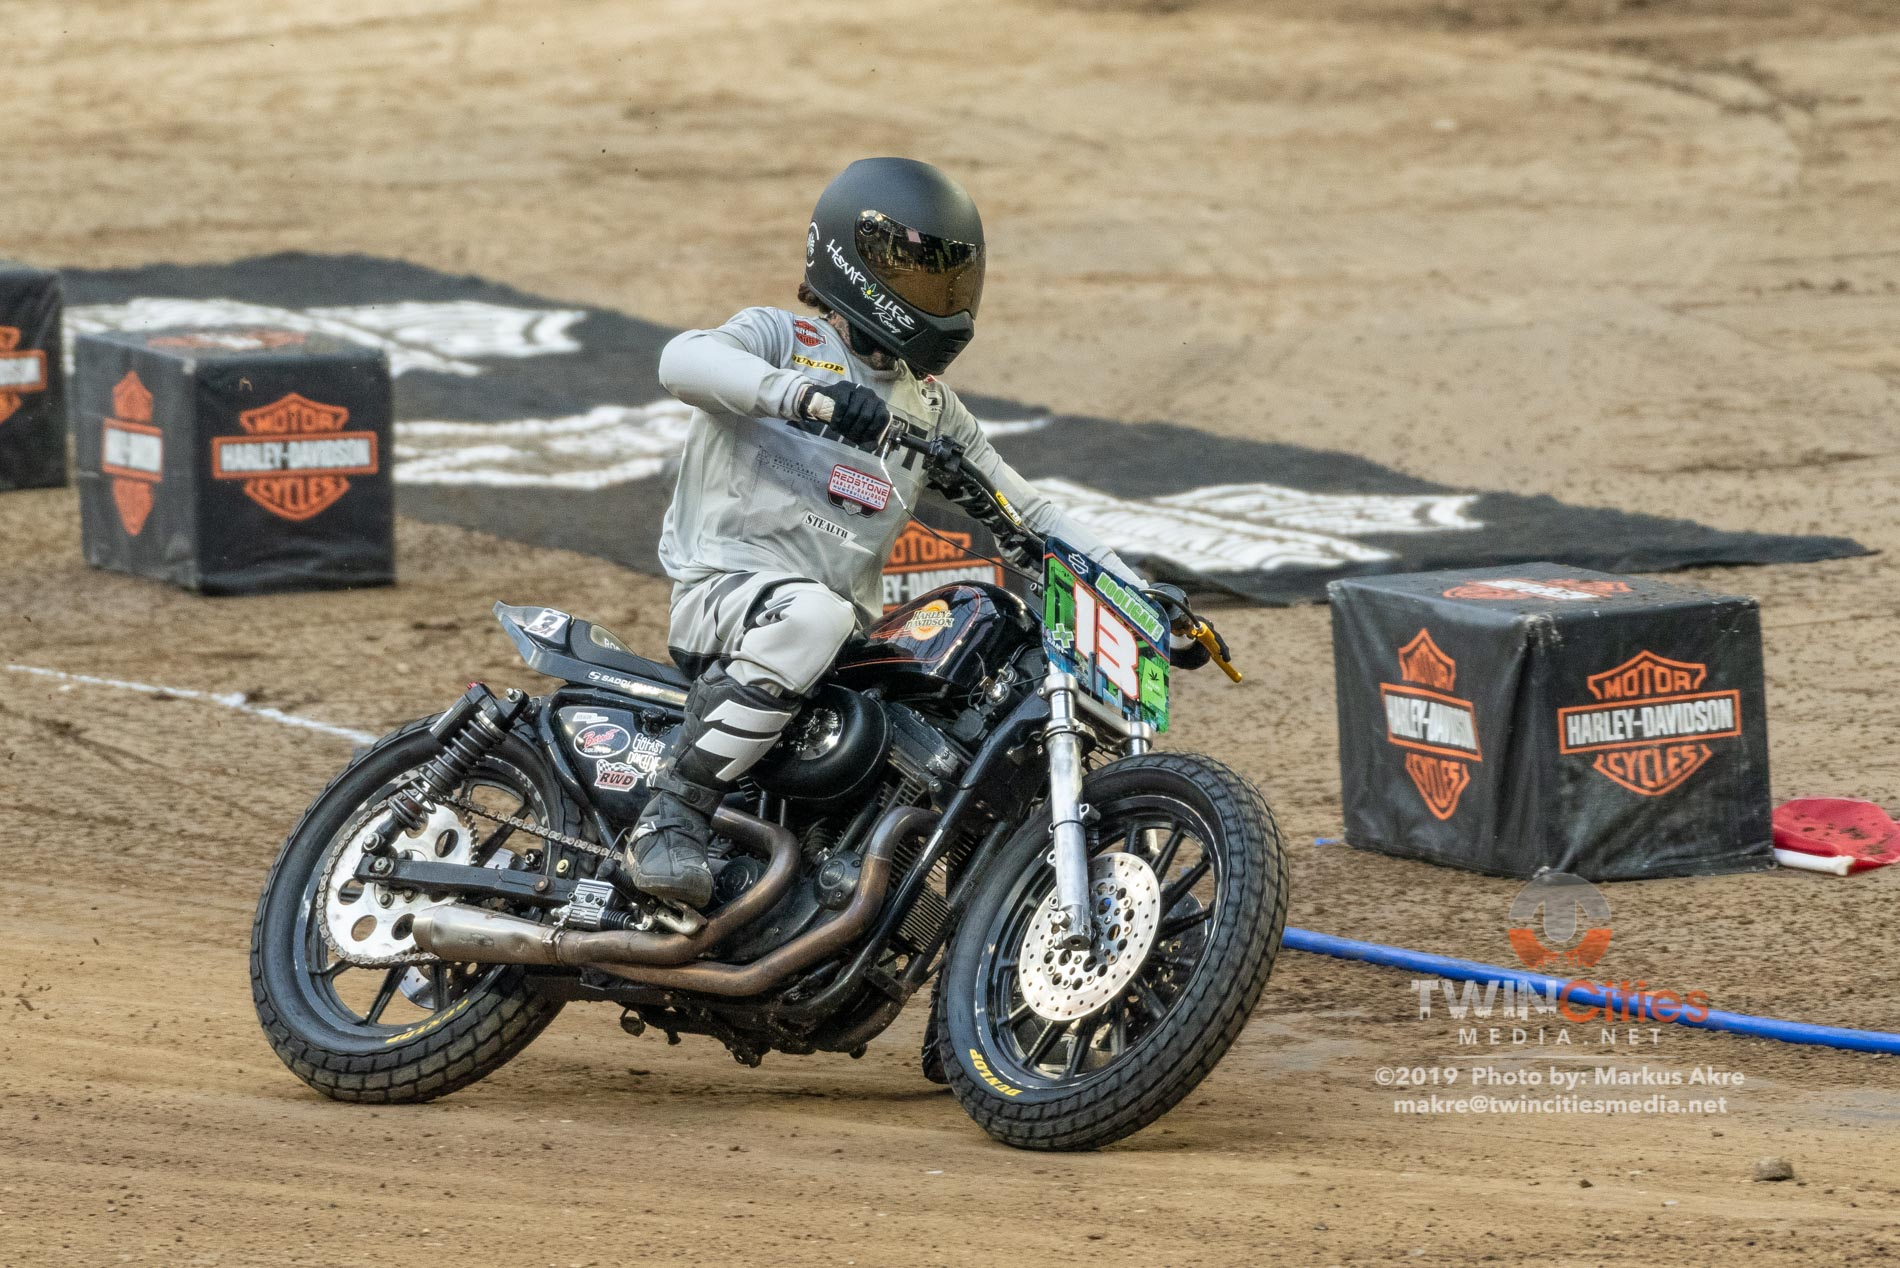 2019-X-Games-Day-4-Harley-Davidson-Hooligan-Racing-2